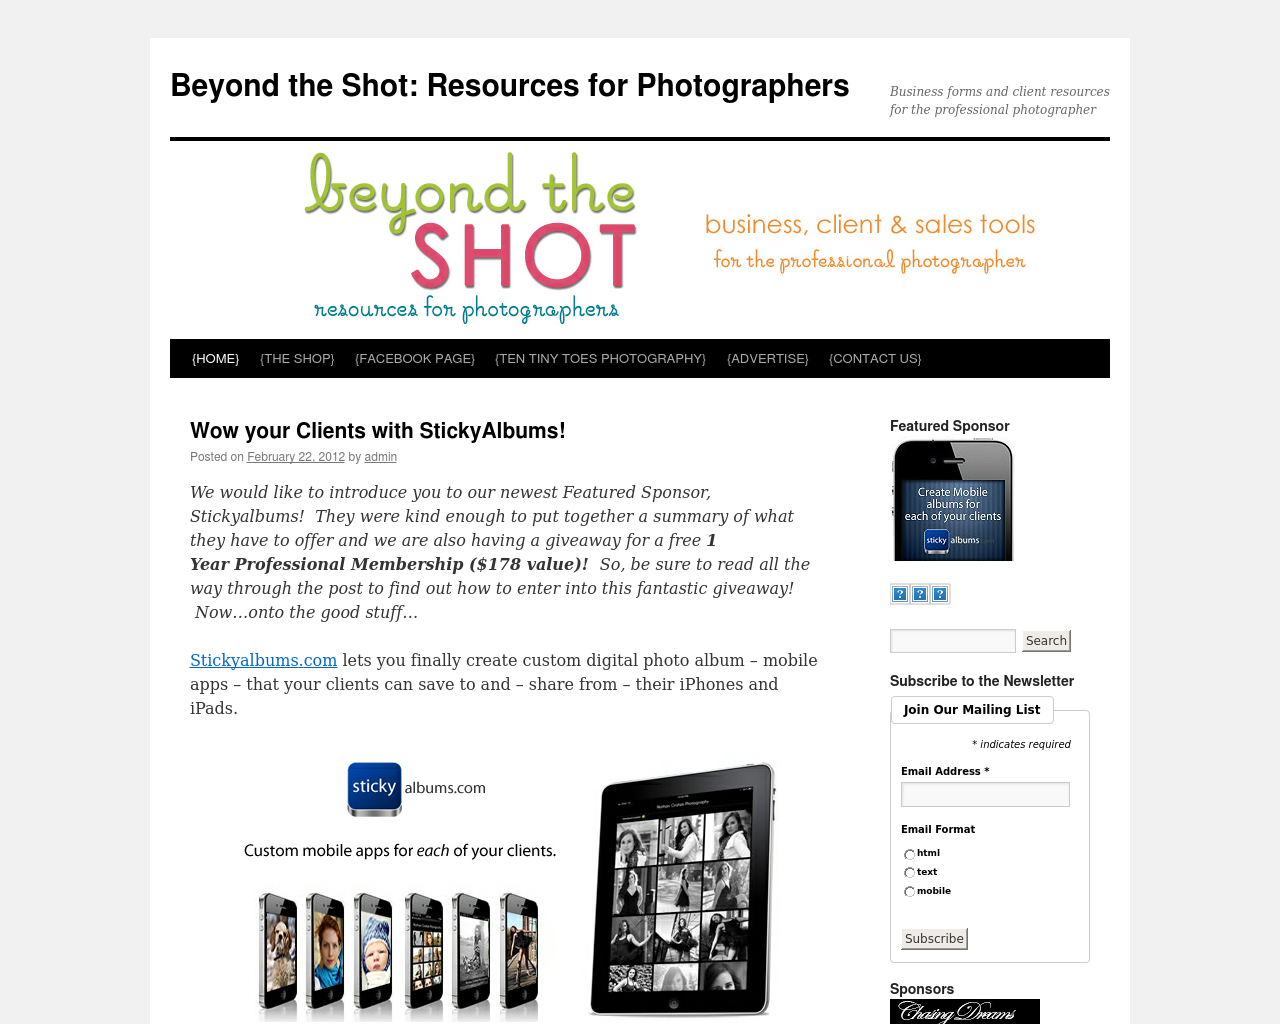 Beyond-the-Shot:-Resources-for-Photographers-Advertising-Reviews-Pricing